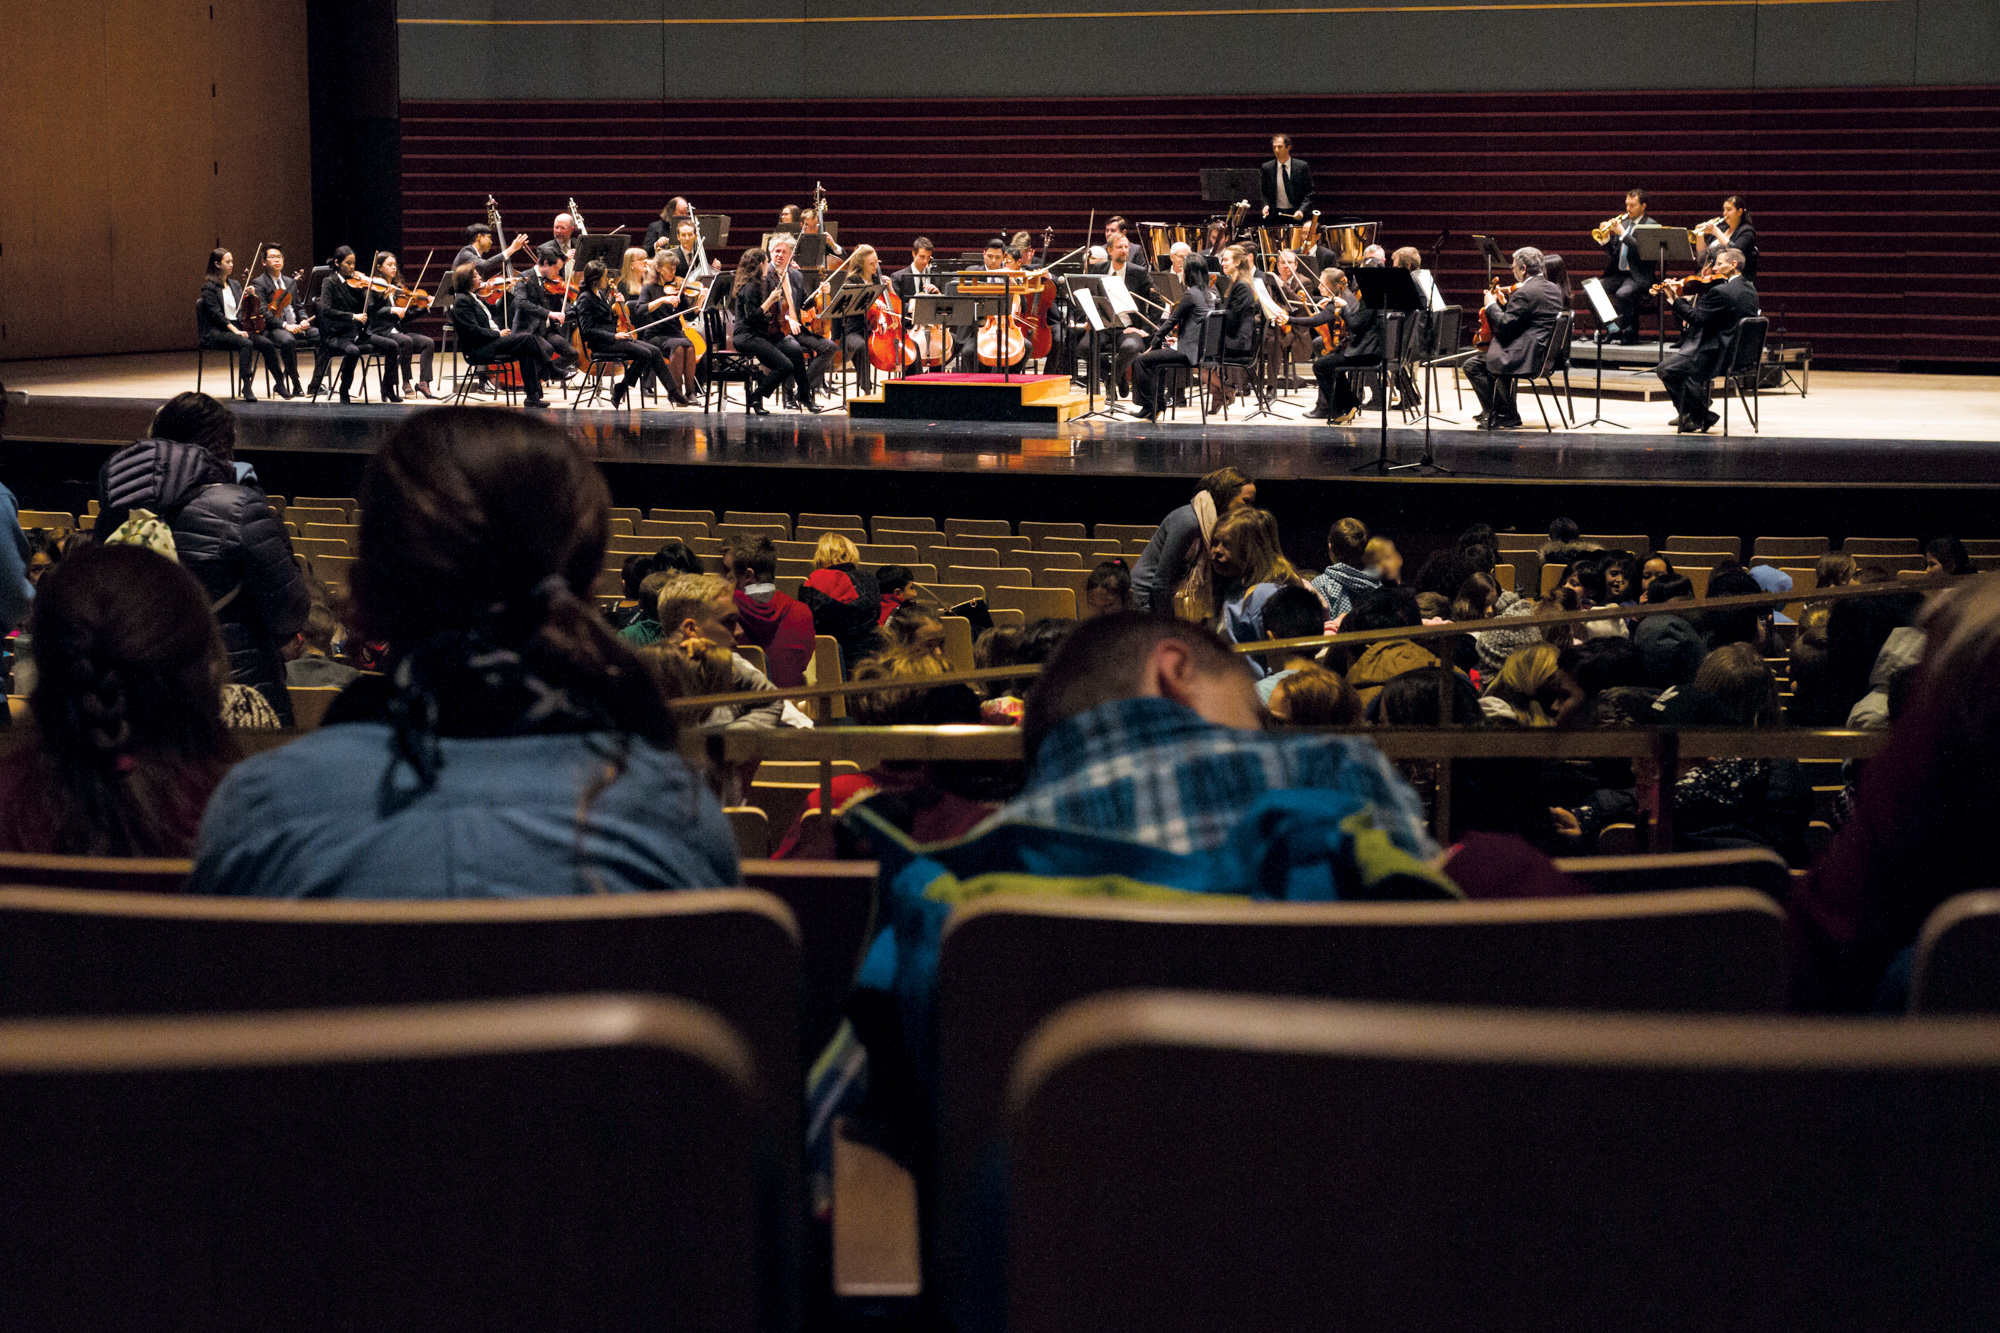 The Open Orchestra. Photo courtesy of the Calgary Philharmonic Orchestra